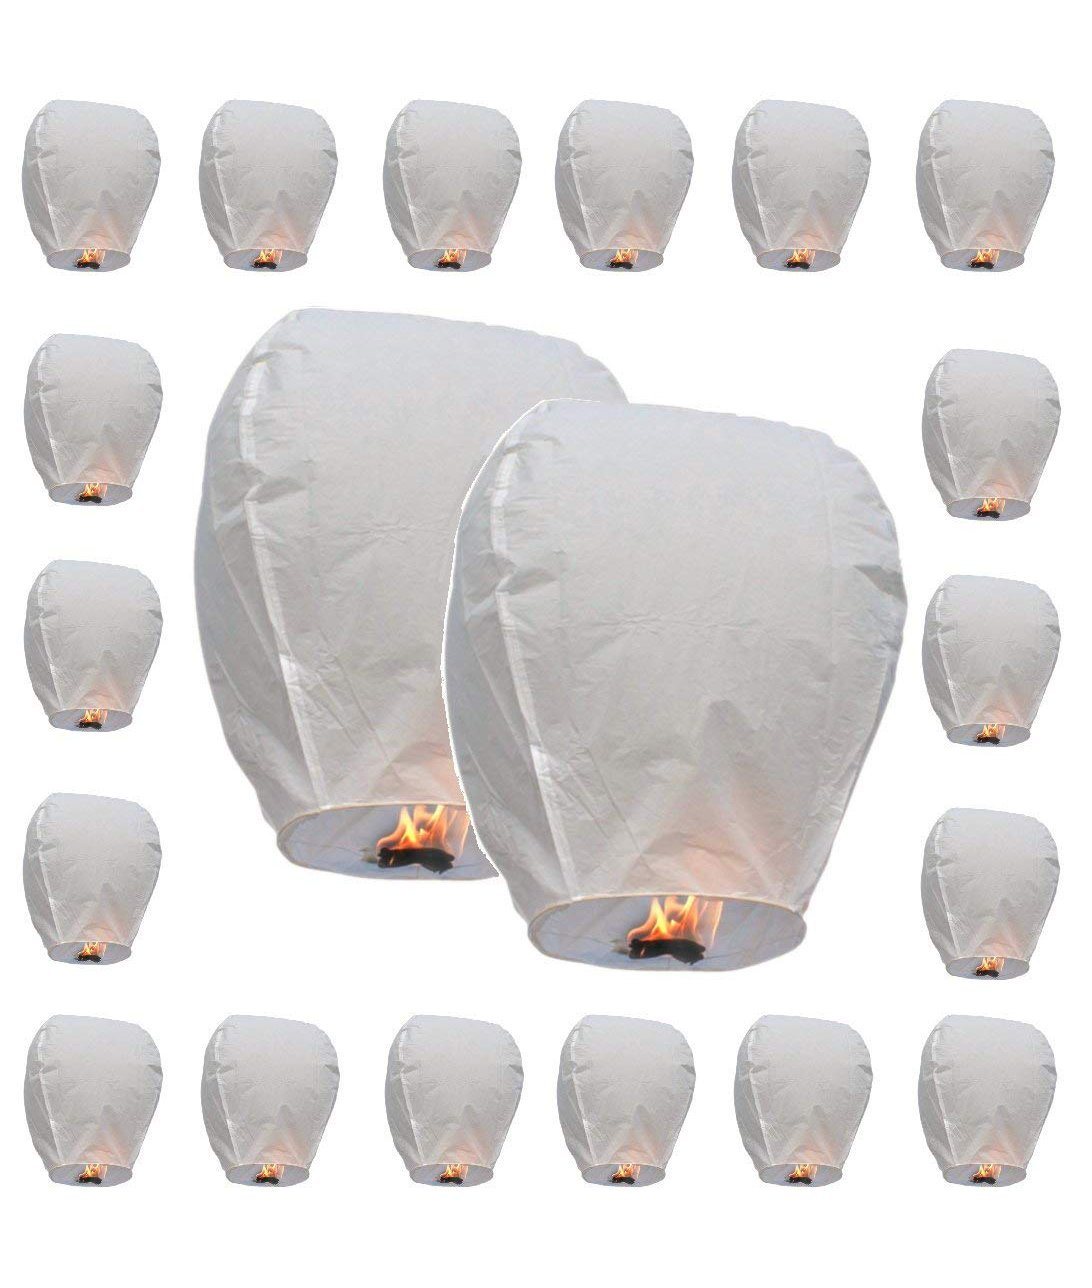 20 x Eco-Friendly Sky Lanterns for Christmas, New Year, Chinese New Year, New Years Eve, Weddings & Parties MYSWEETY